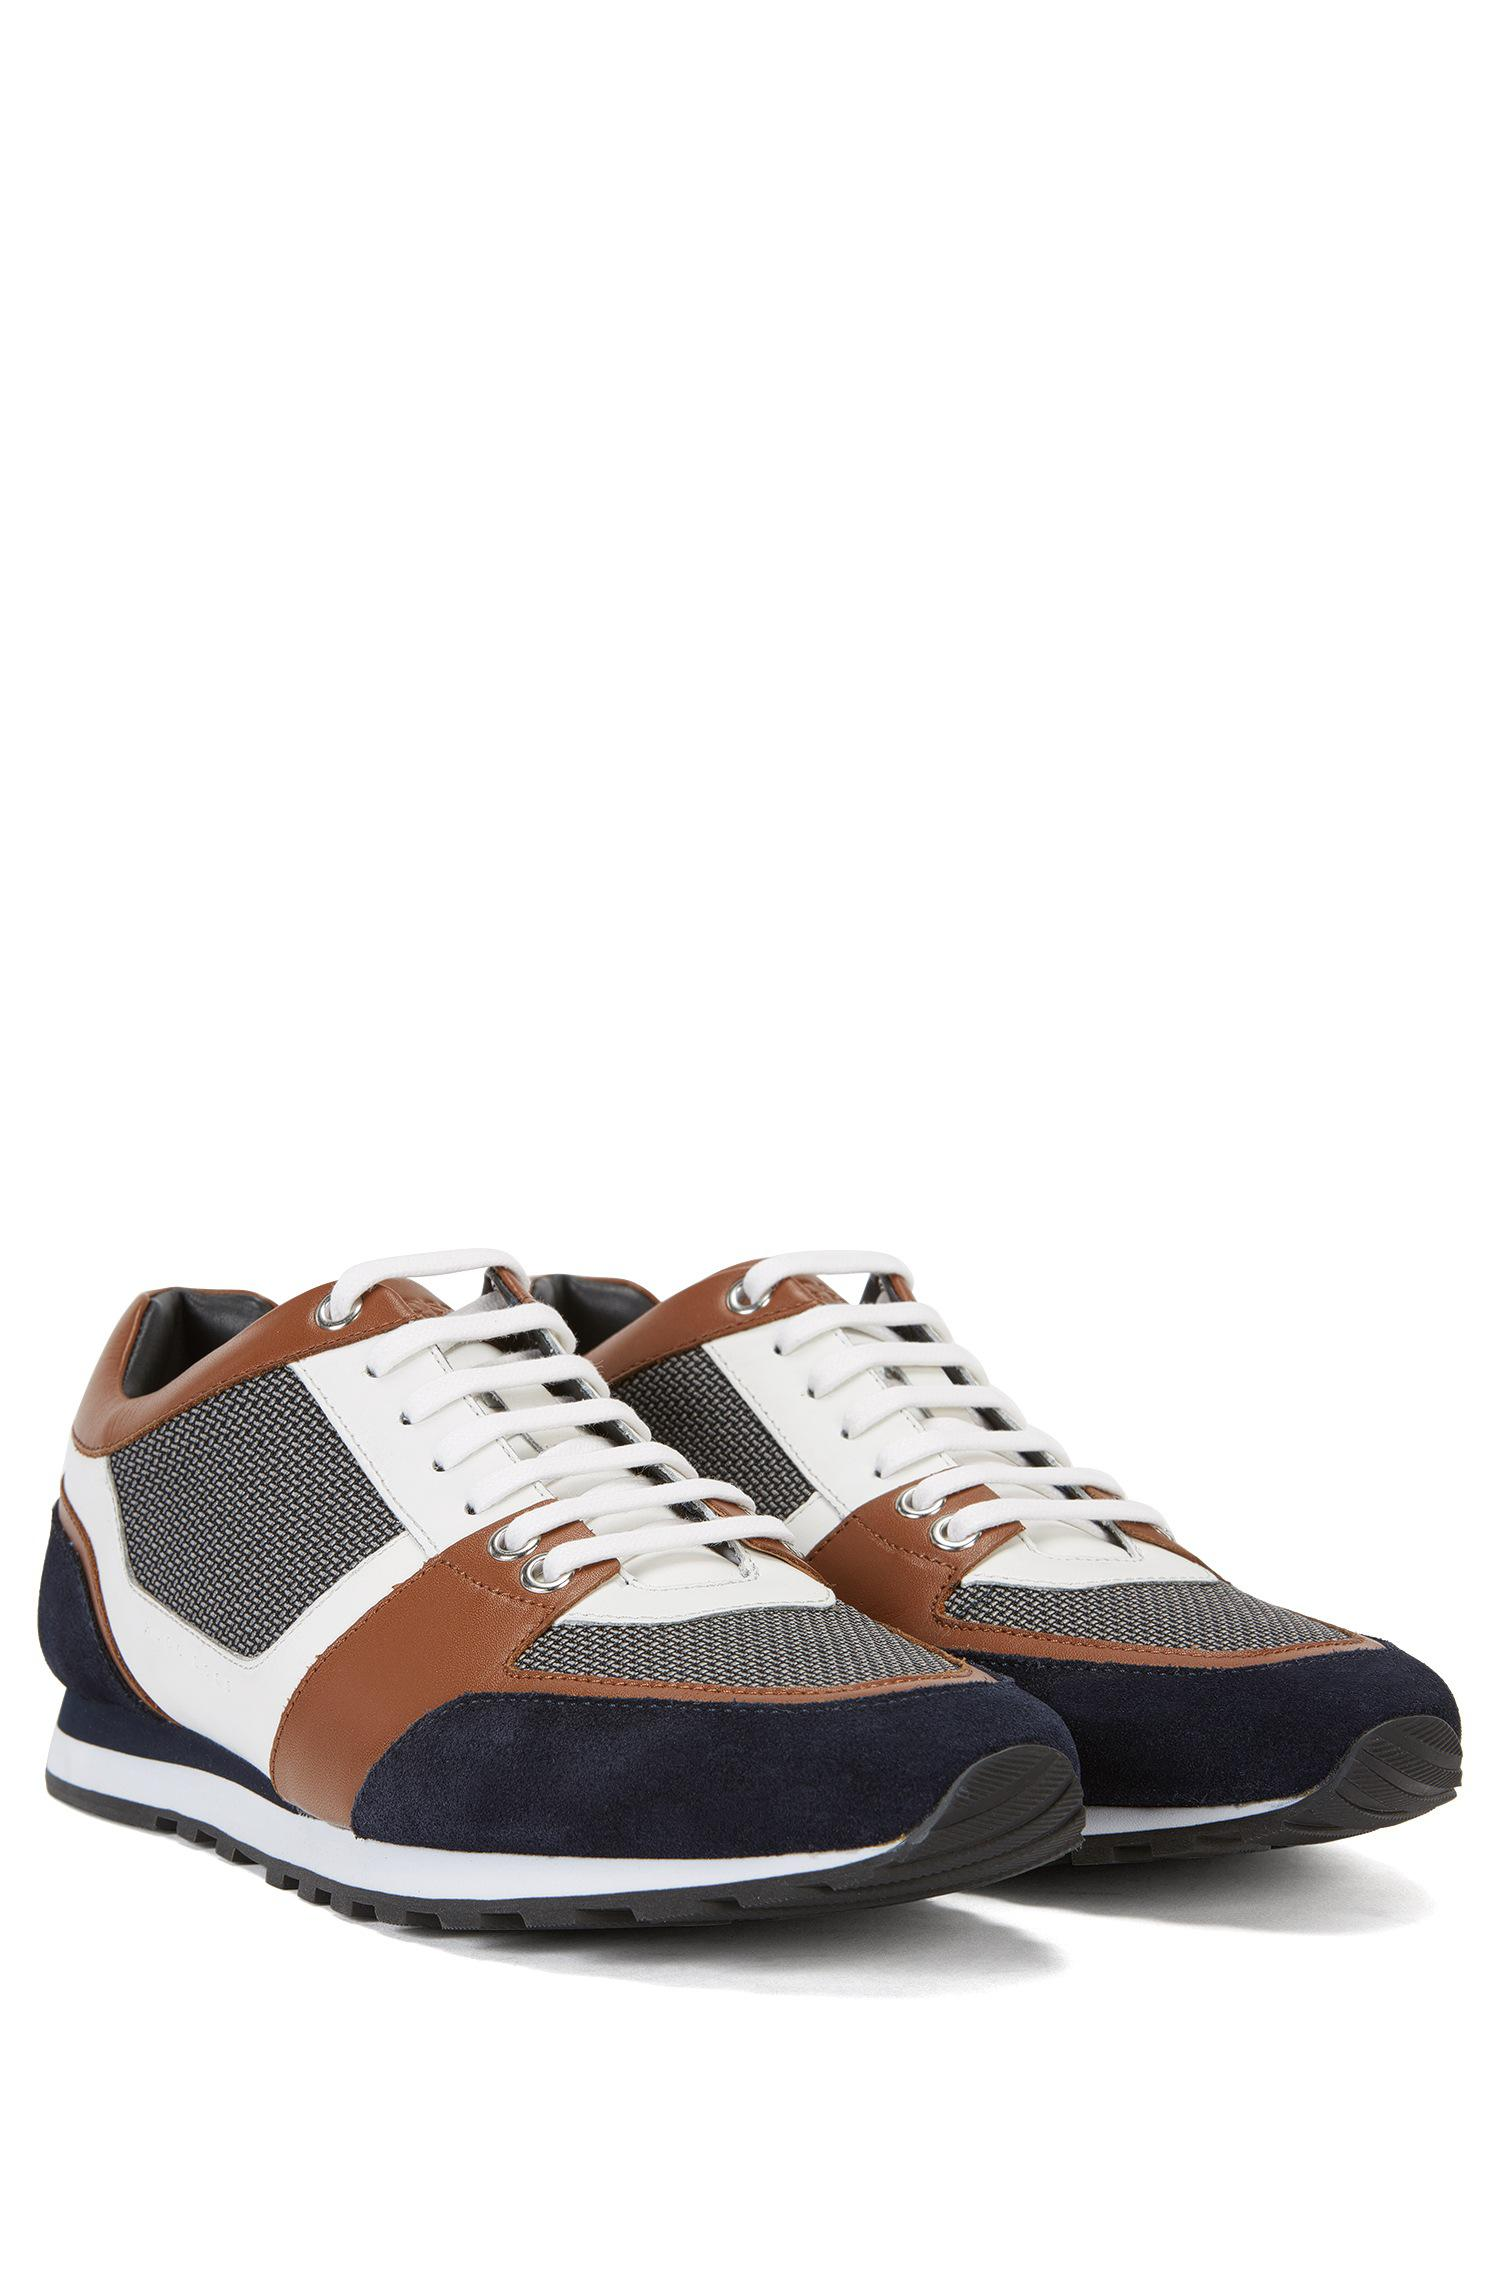 Visa Payment Online High Quality Online Colourblock trainers with hybrid uppers BOSS Clearance Shop For WJIUu